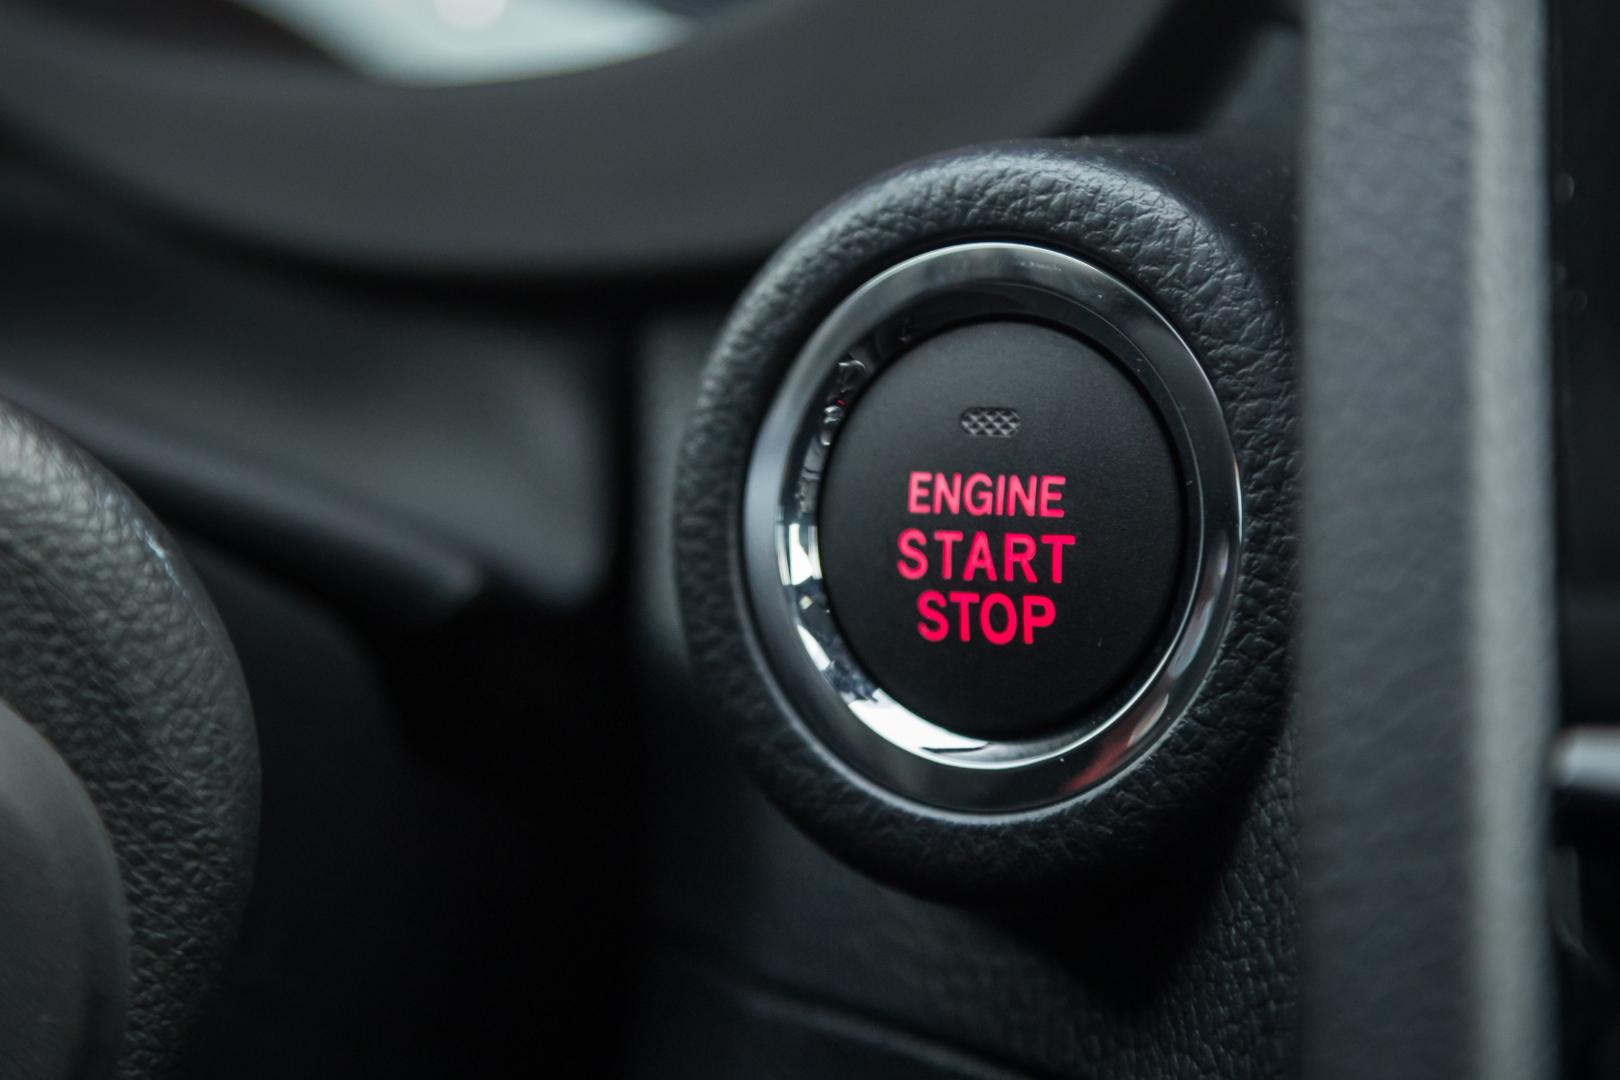 Subaru WRX STI engine start knopje (2018)